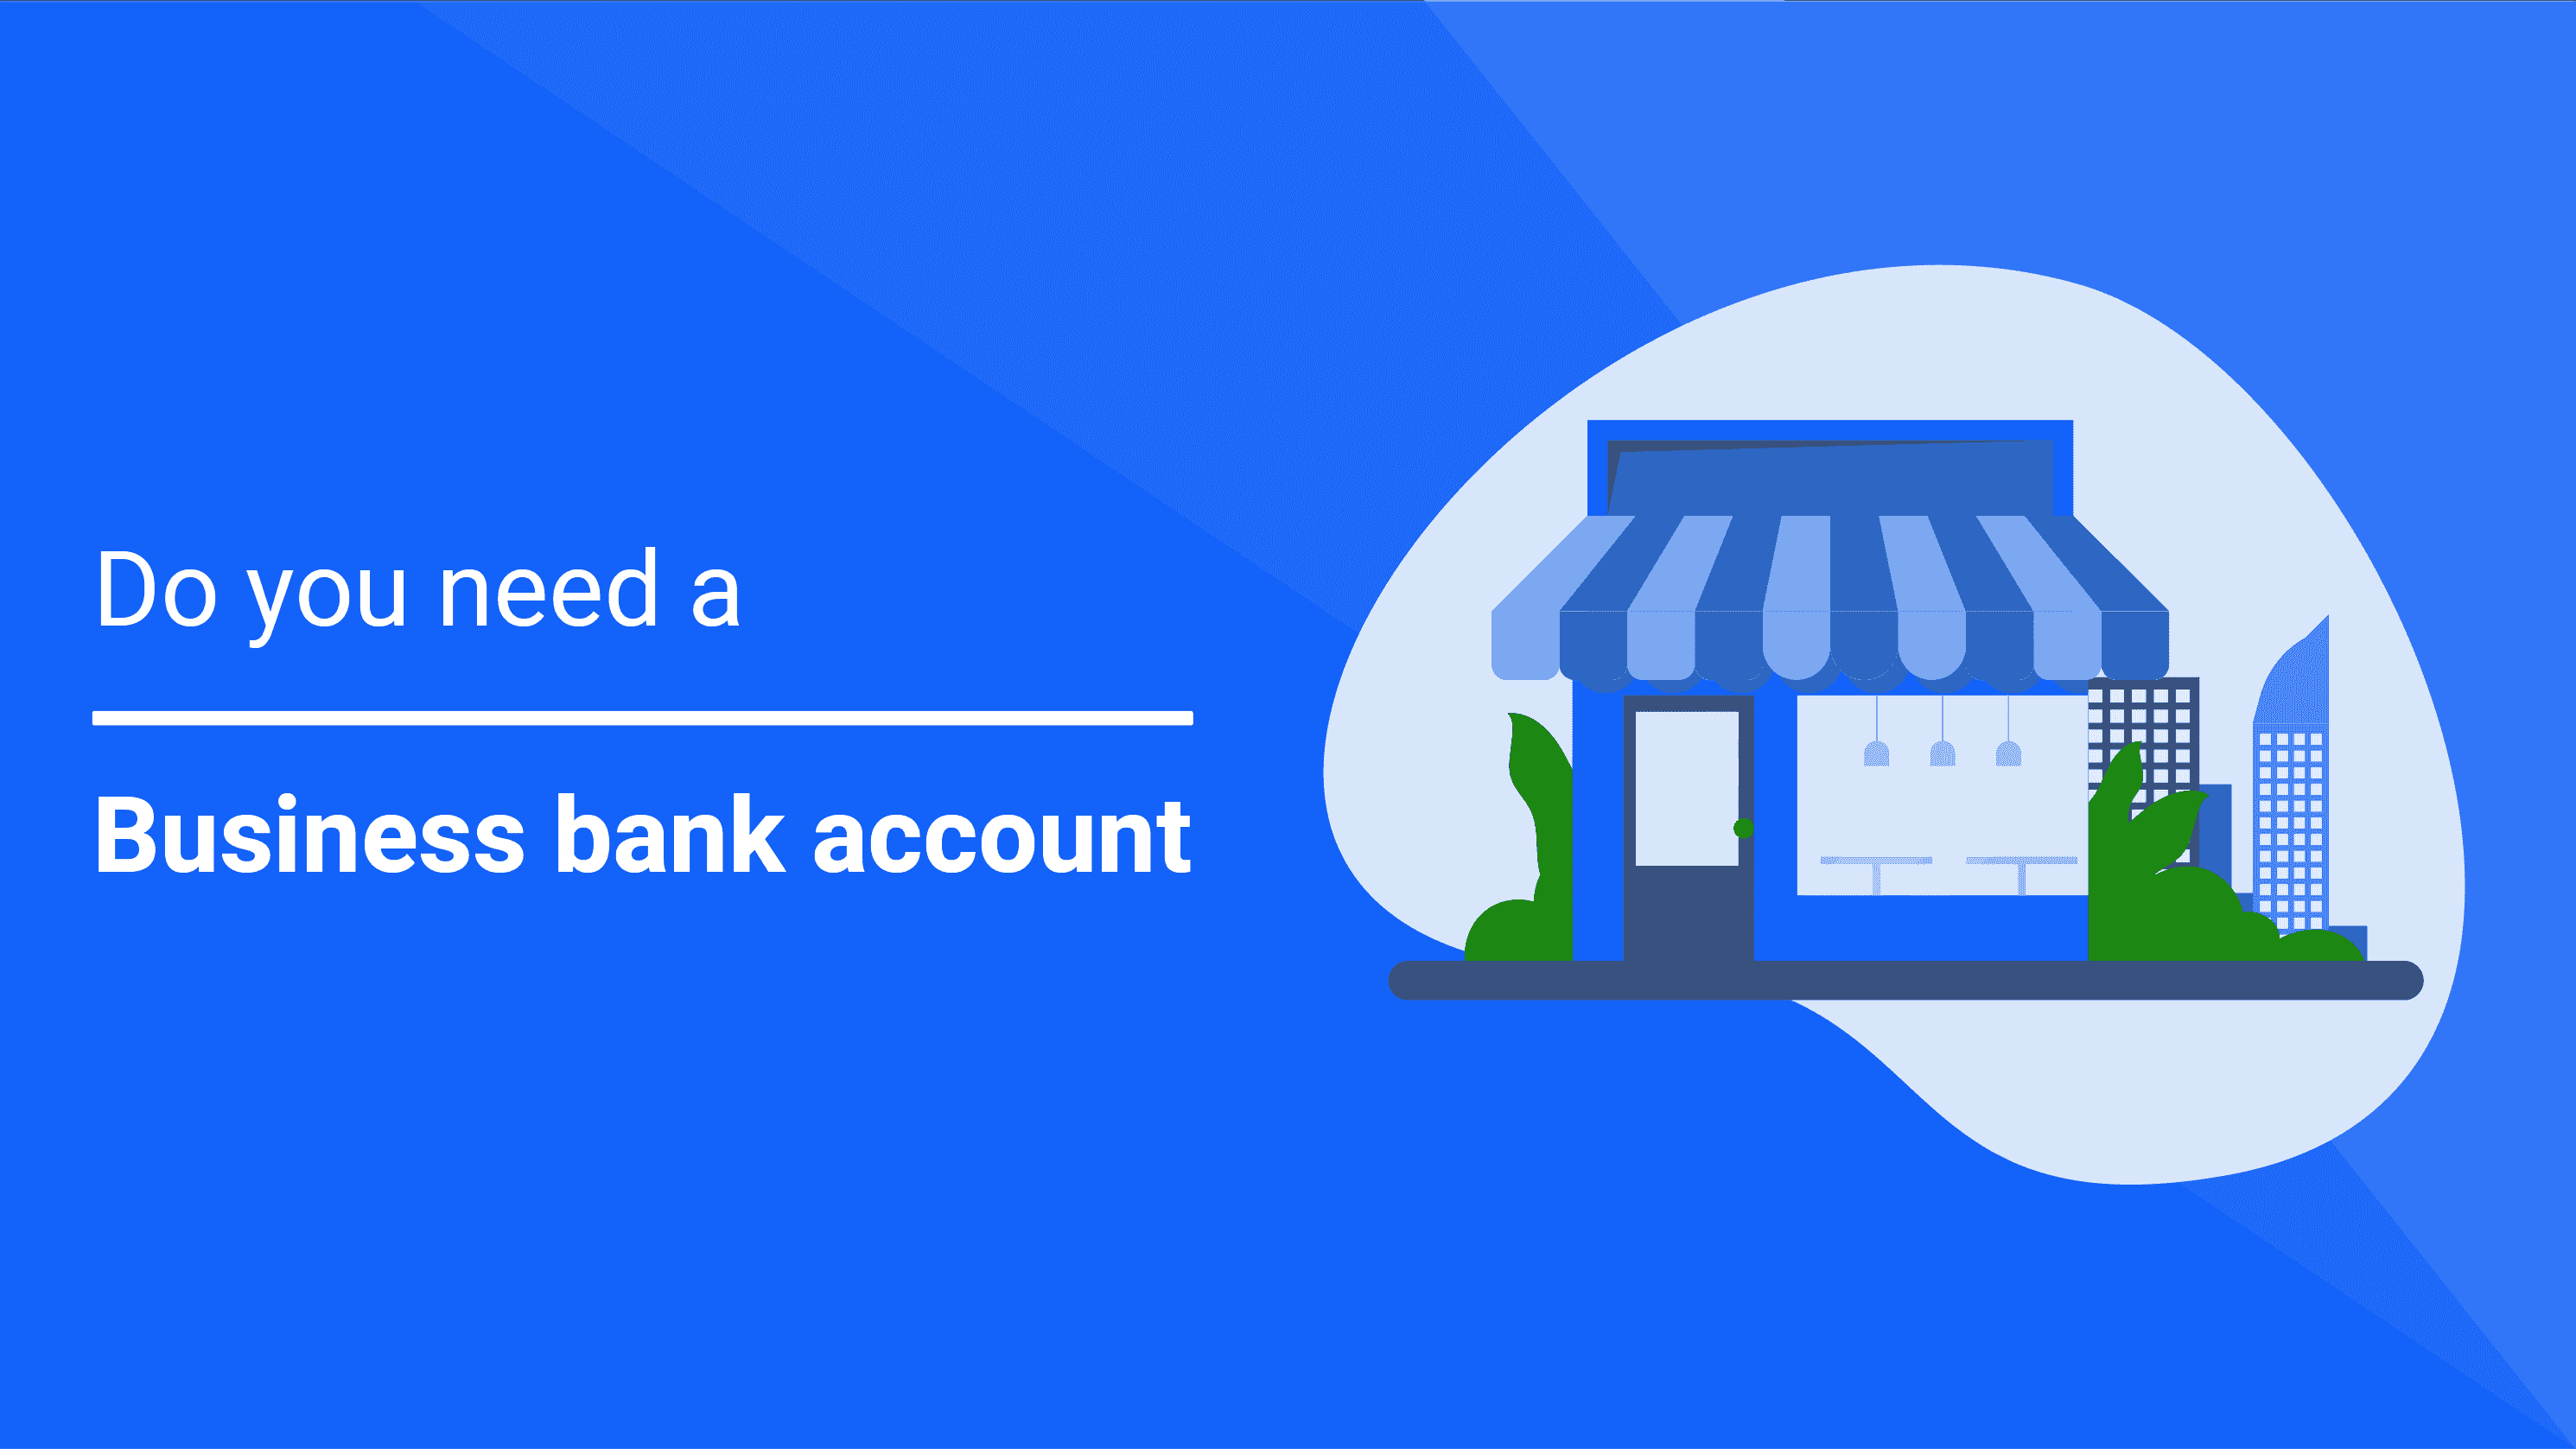 Do you need a business bank account?